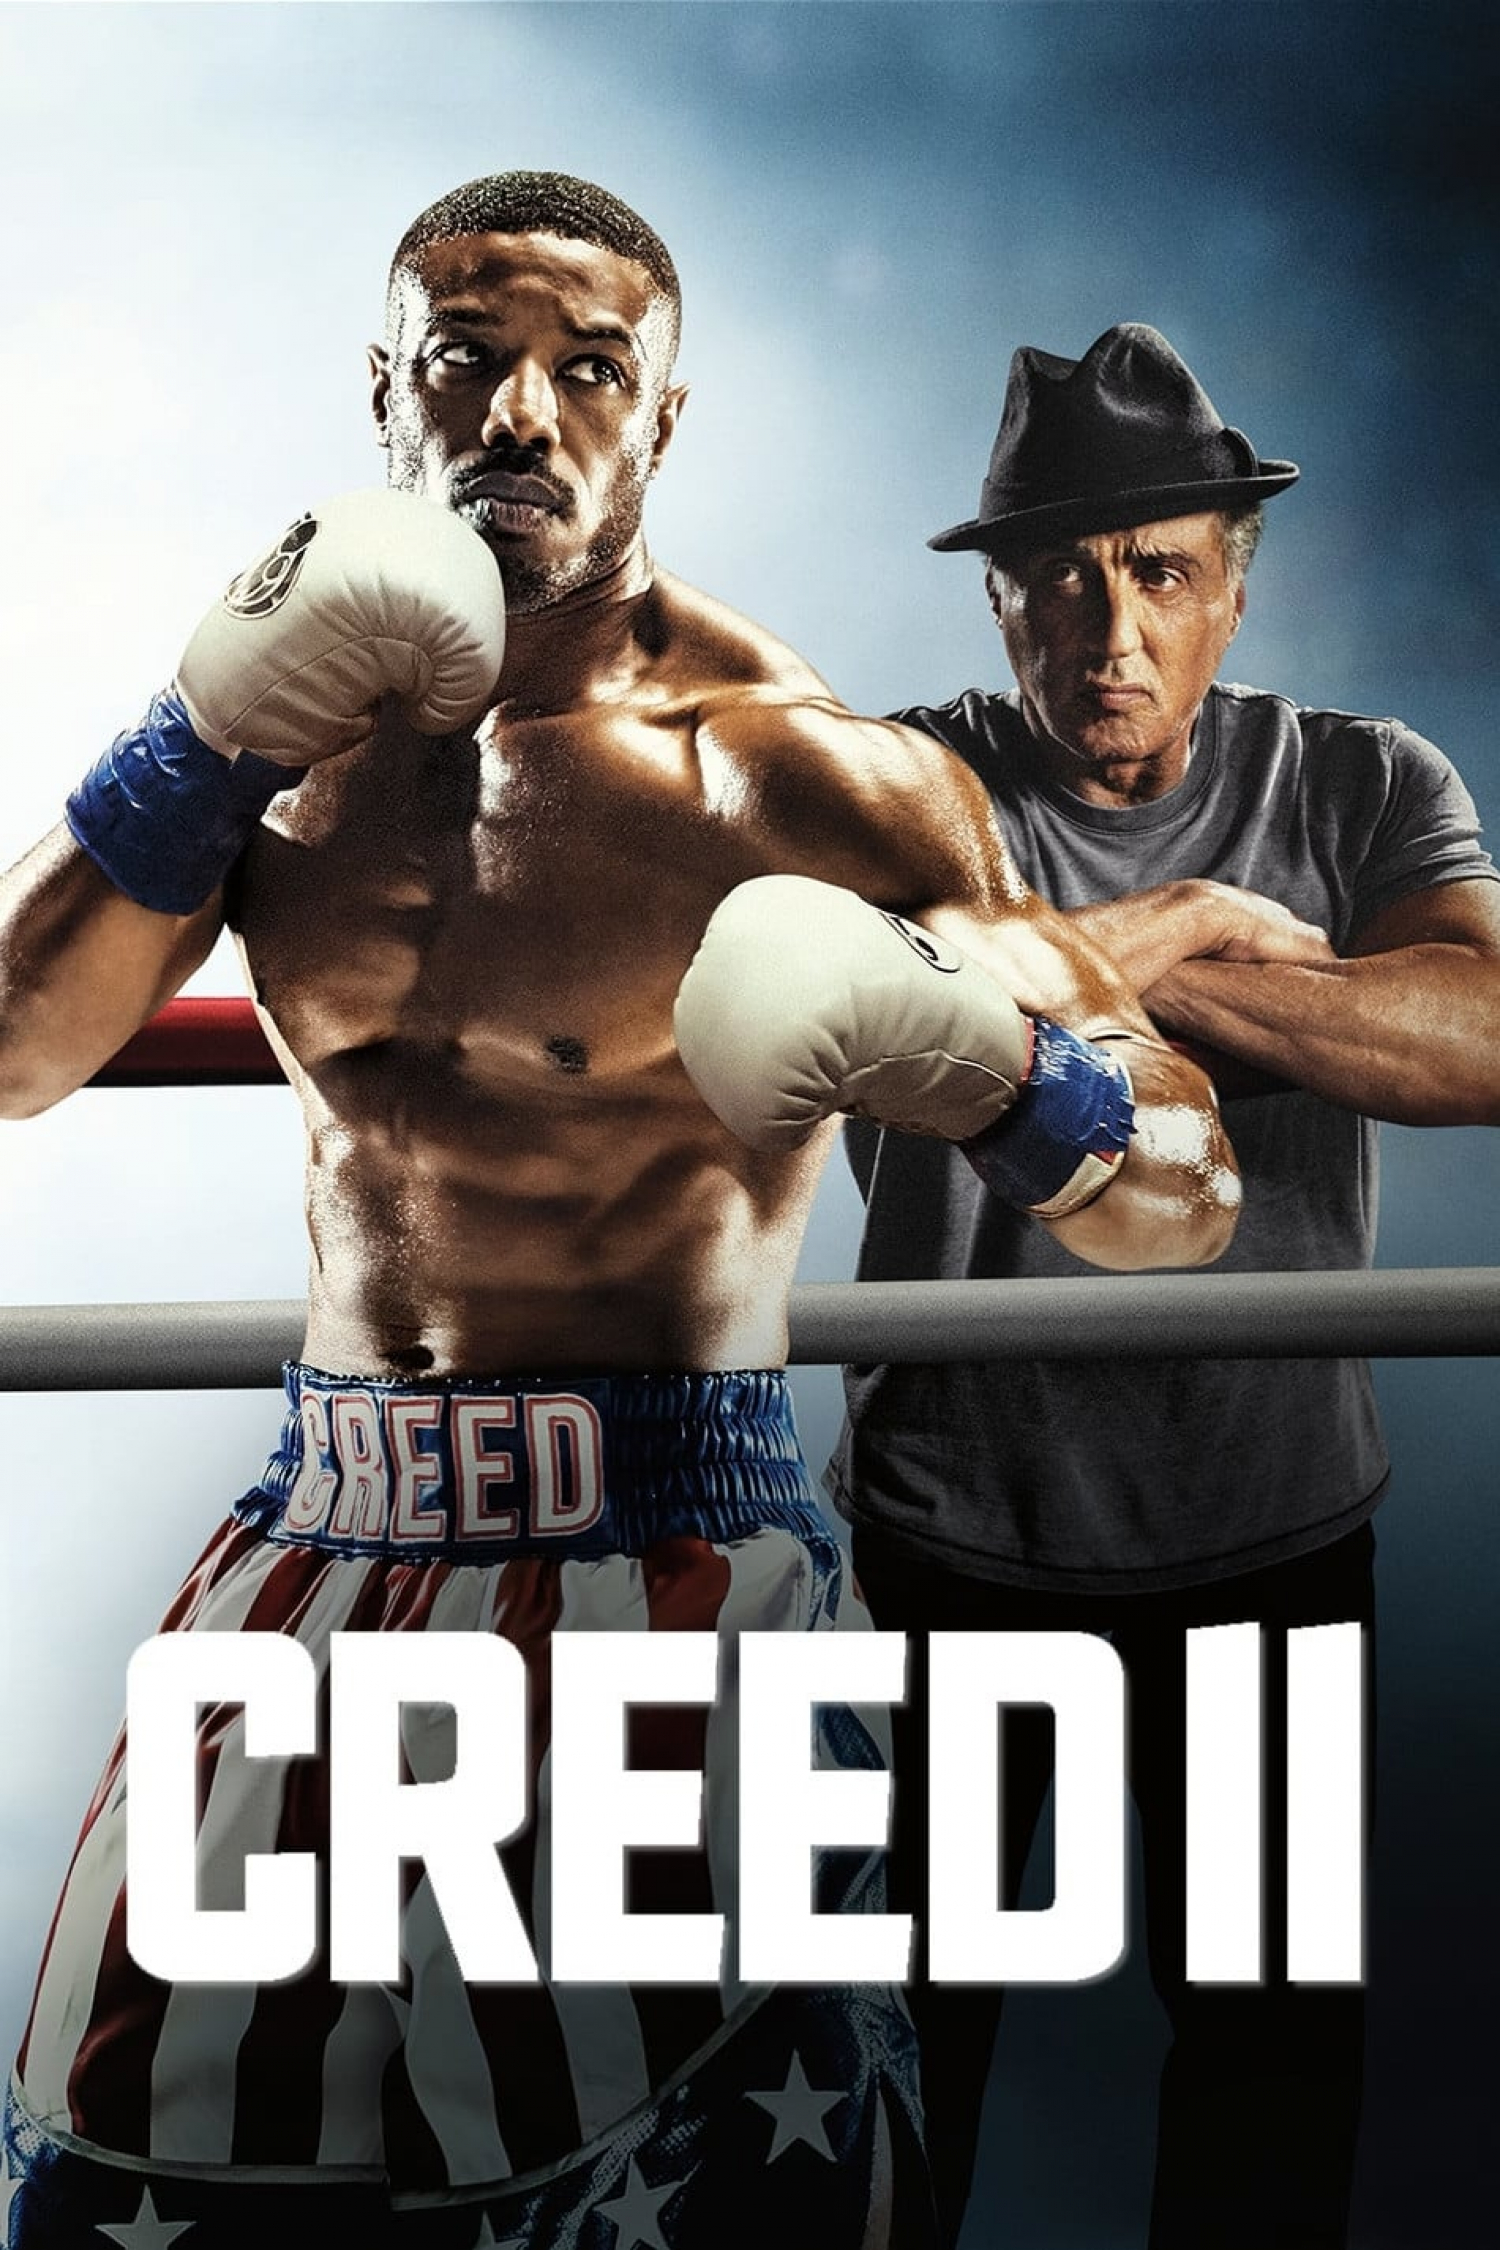 Creed Ii Movie Info And Showtimes In Trinidad And Tobago Id 2231